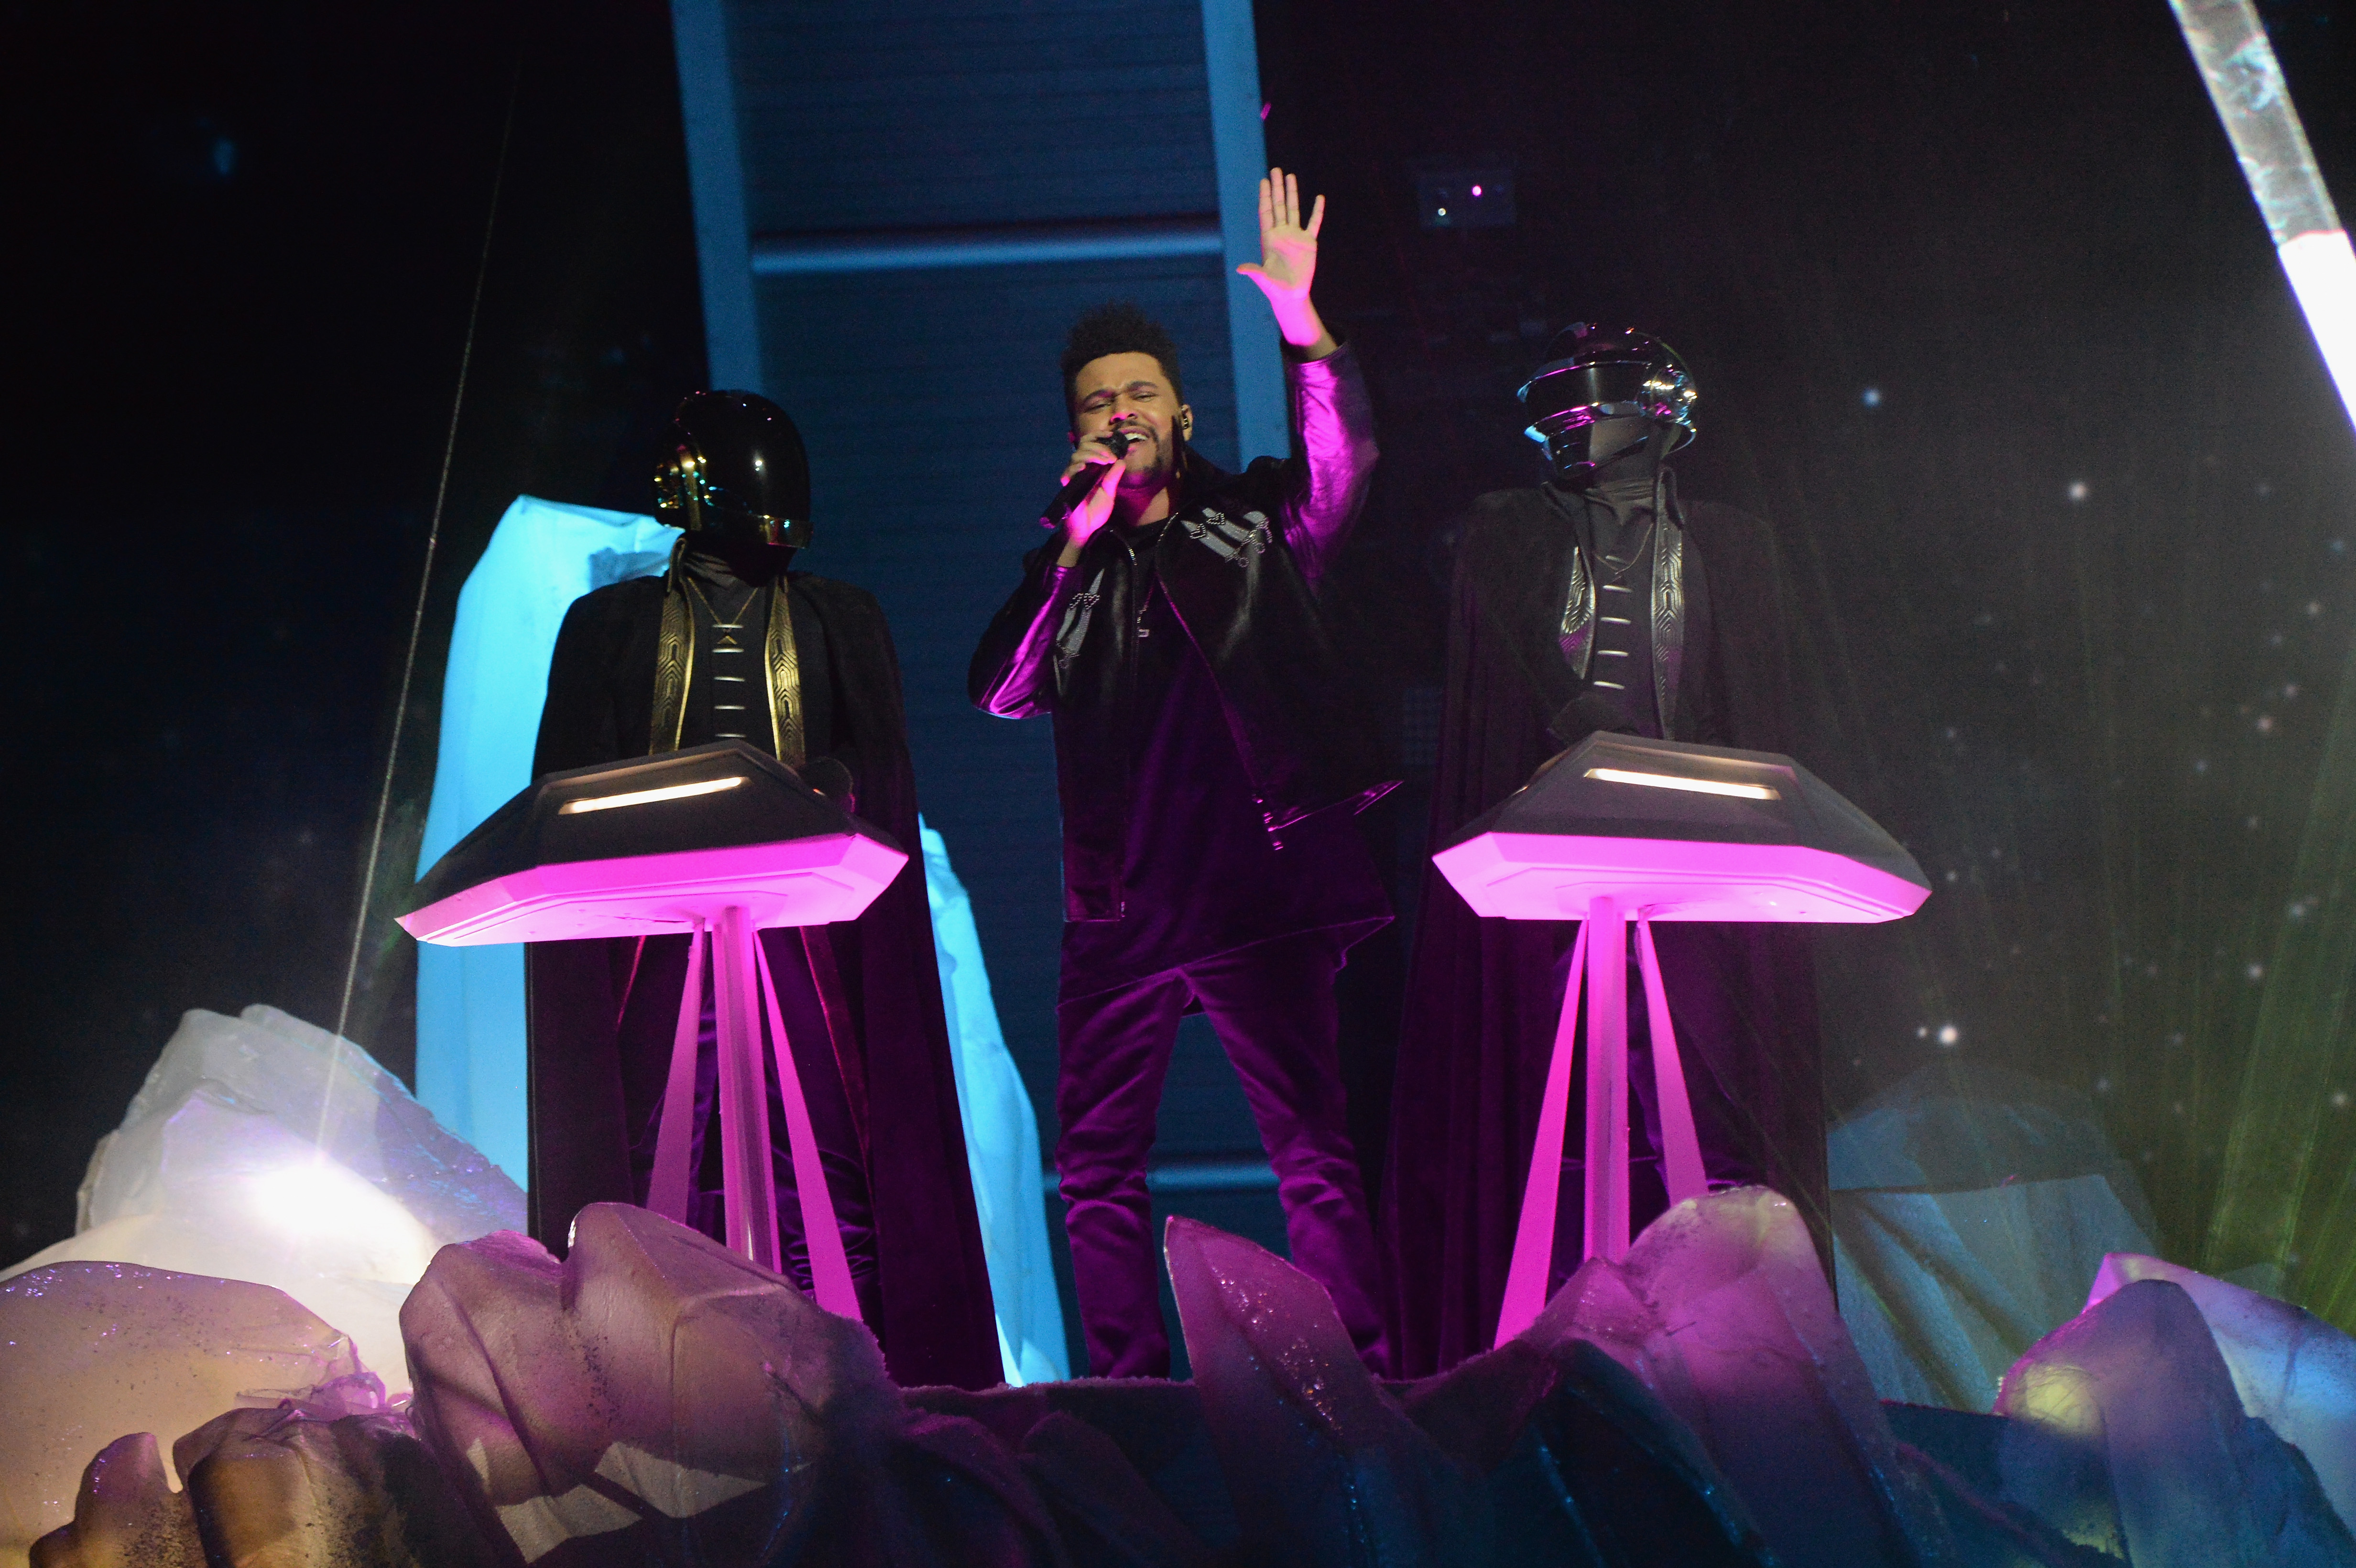 The Weeknd's Grammys performance with Daft Punk was *so* good, let's all relive it right now